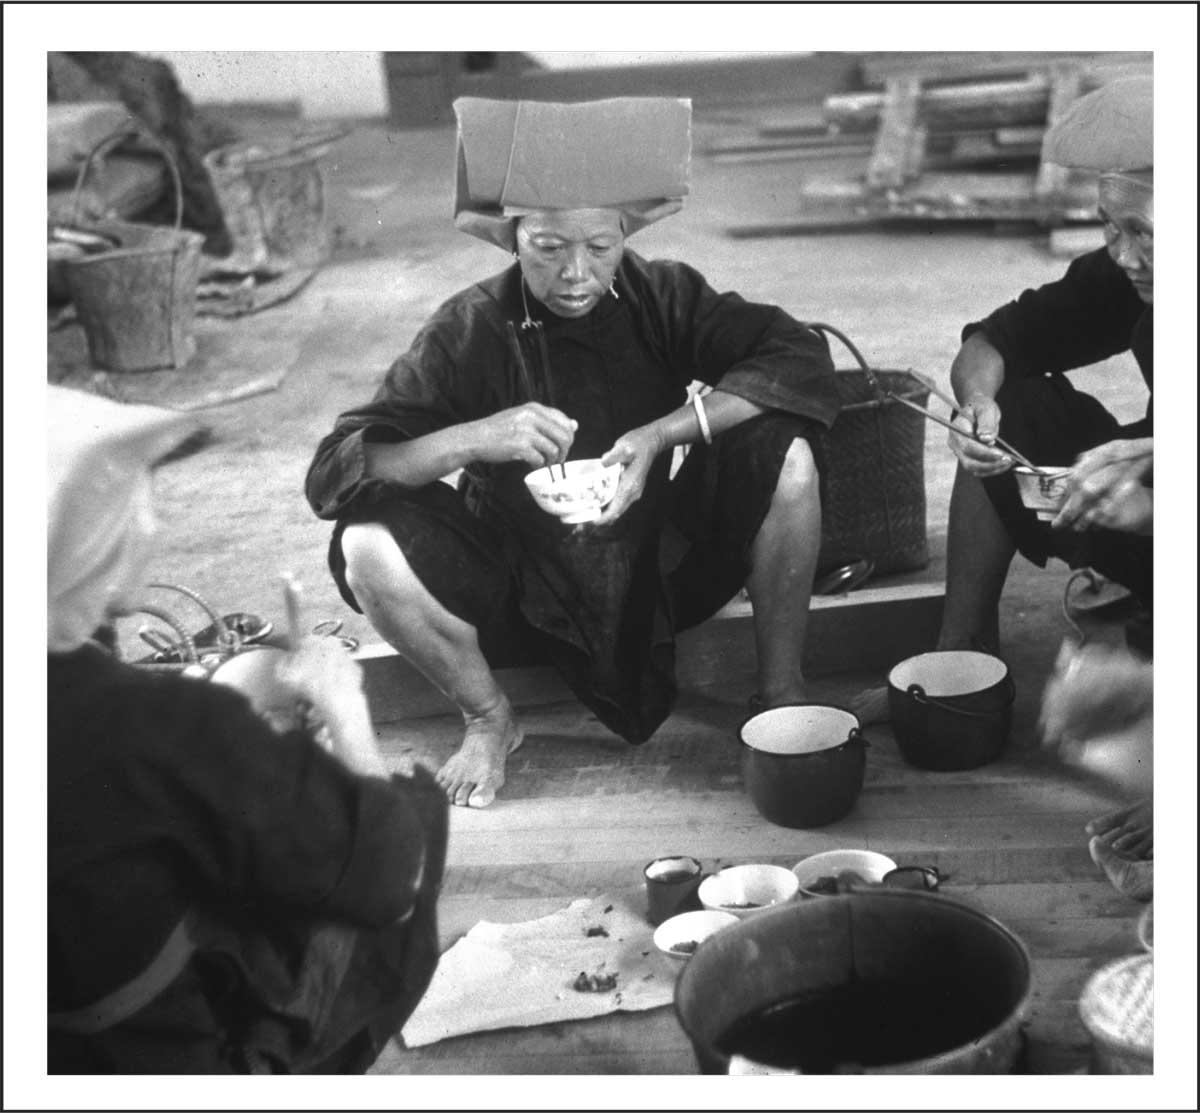 Samsui women having their meal at the worksite (1954)<br>Ministry of Information and the Arts Collection, courtesy of National Archives of Singapore